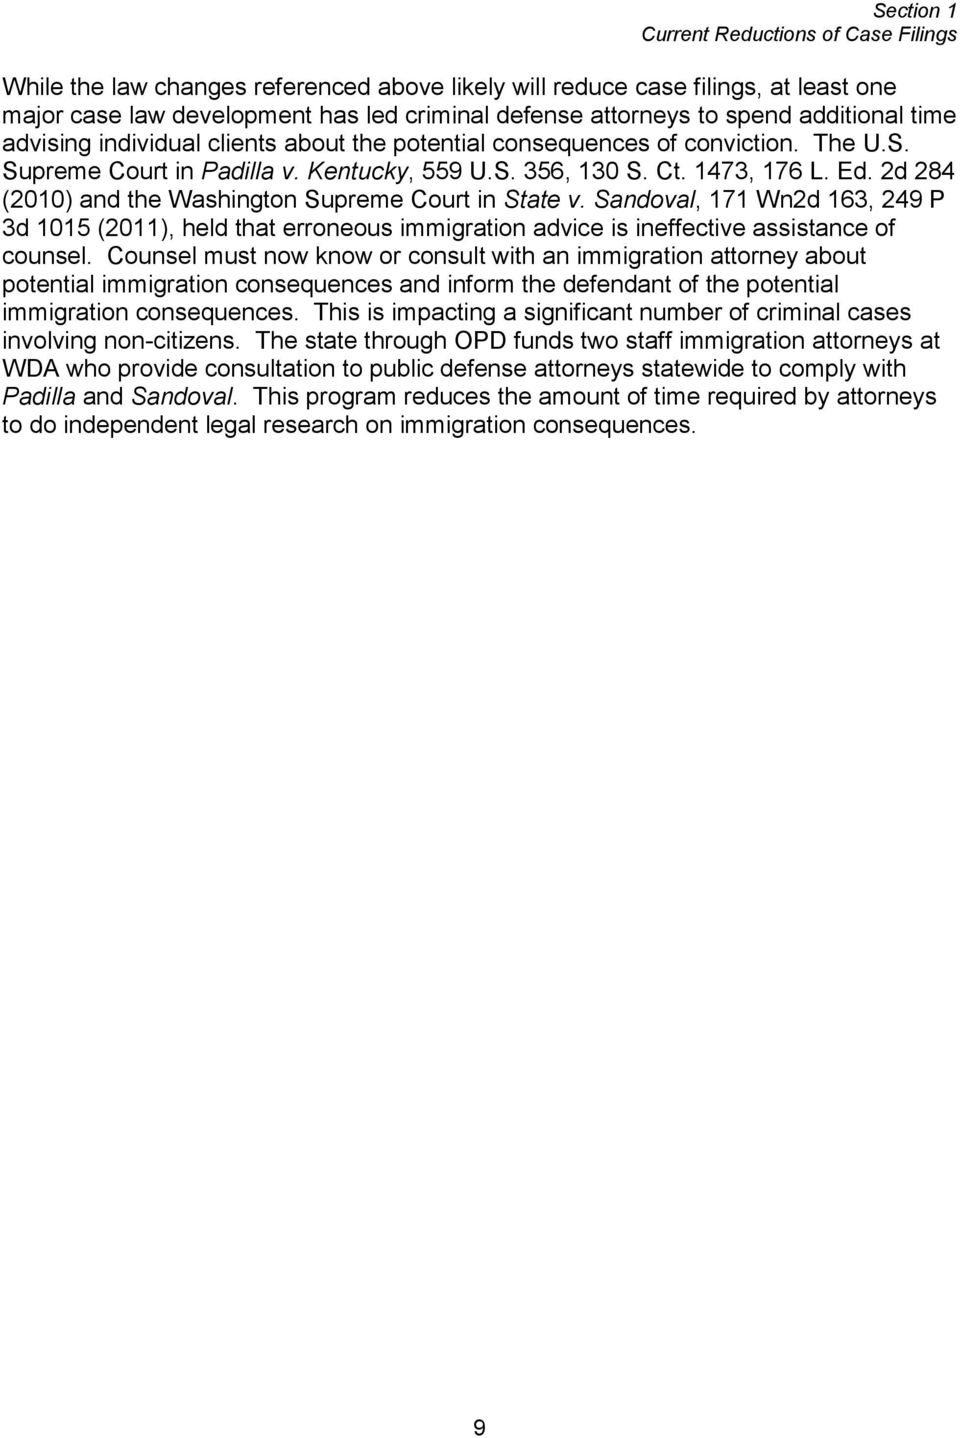 2d 284 (2010) and the Washington Supreme Court in State v. Sandoval, 171 Wn2d 163, 249 P 3d 1015 (2011), held that erroneous immigration advice is ineffective assistance of counsel.